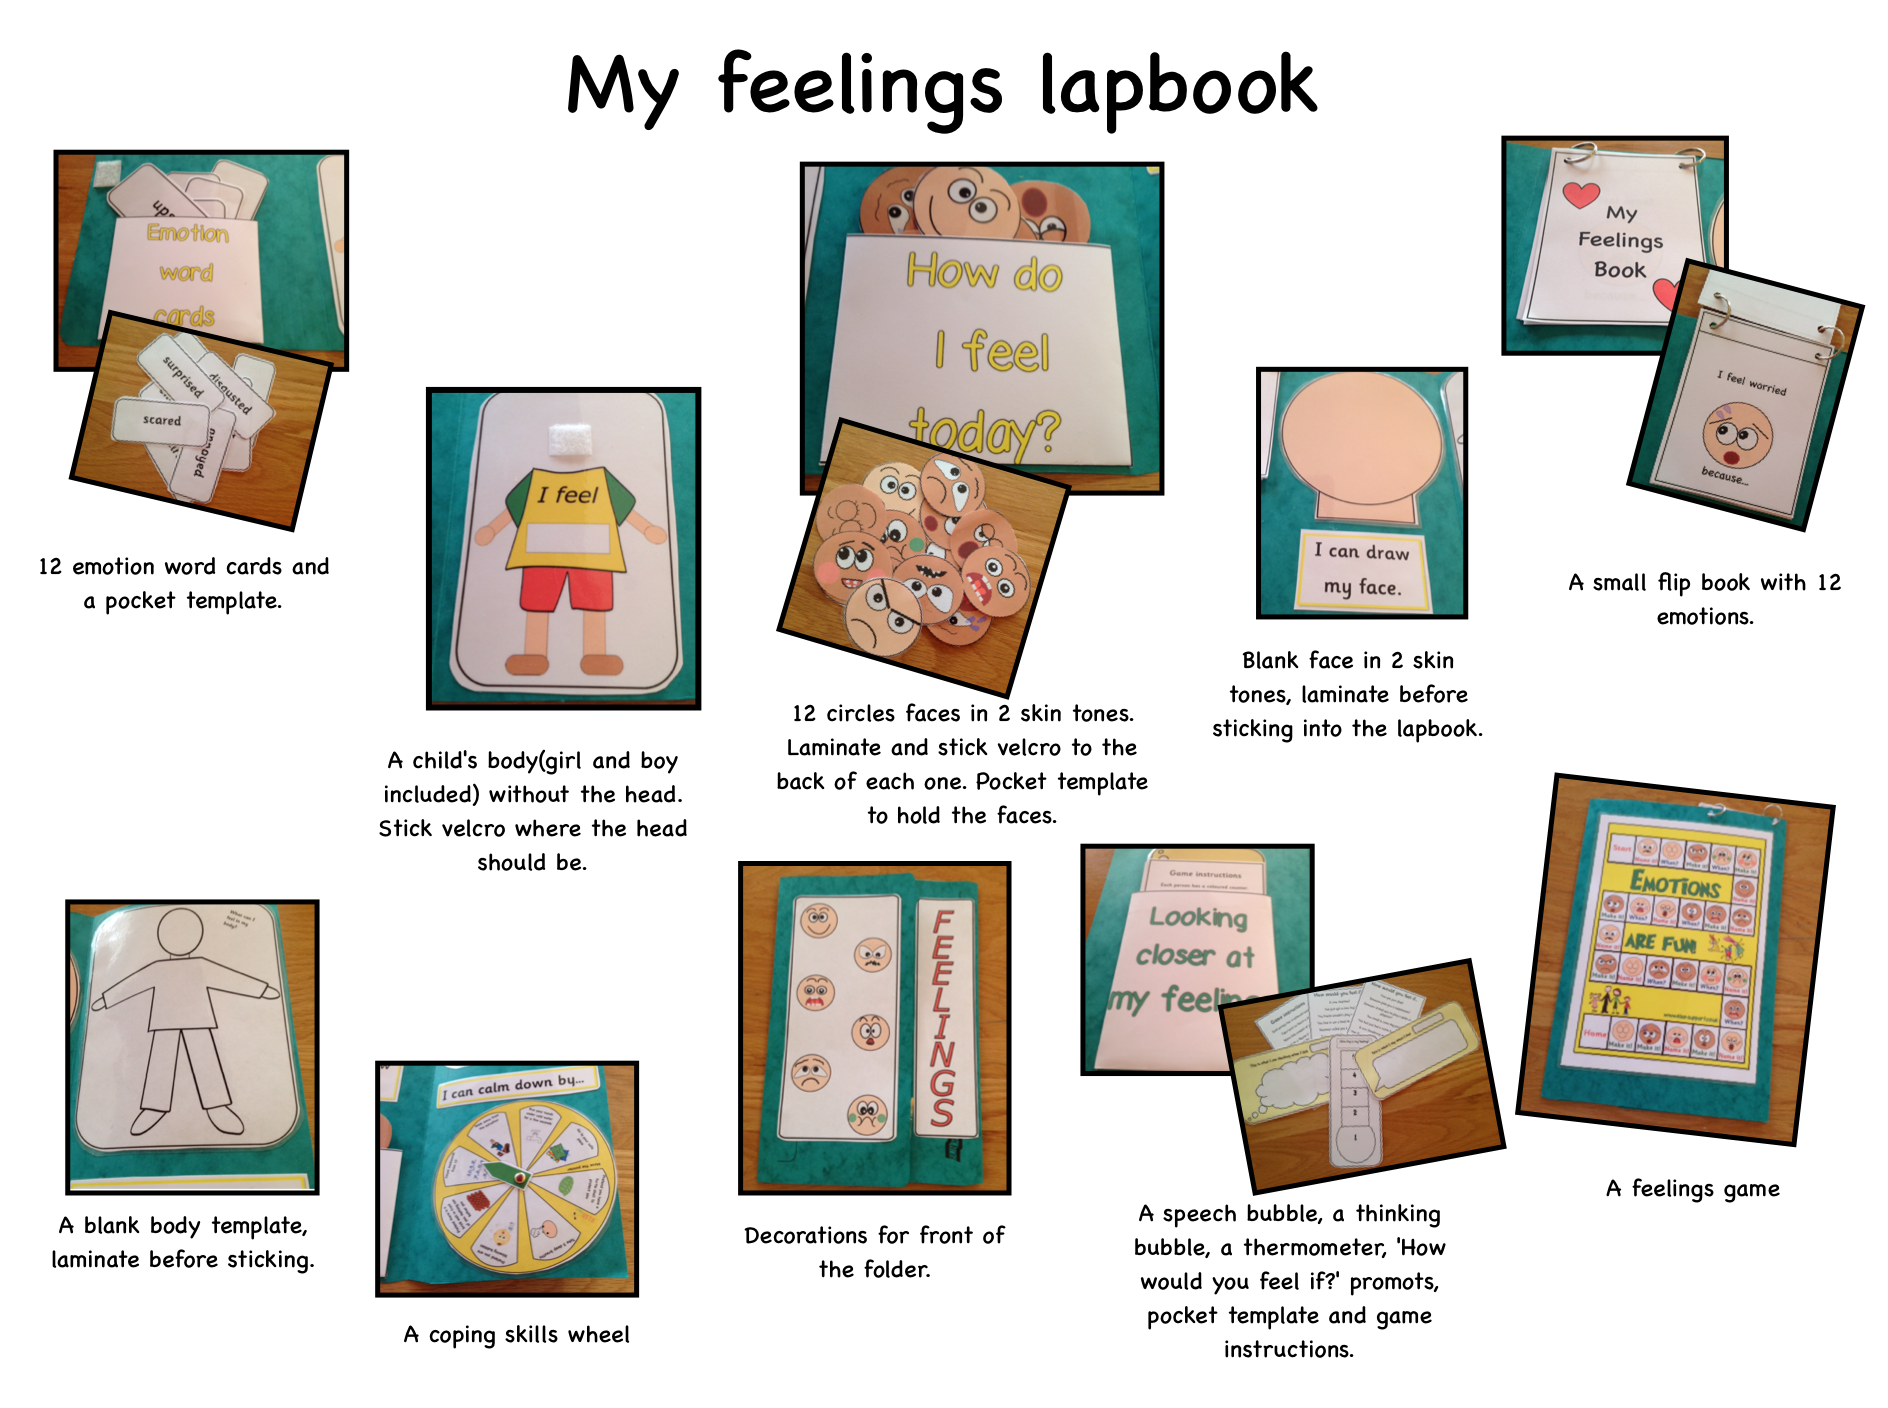 my feelings lapbook - item 123